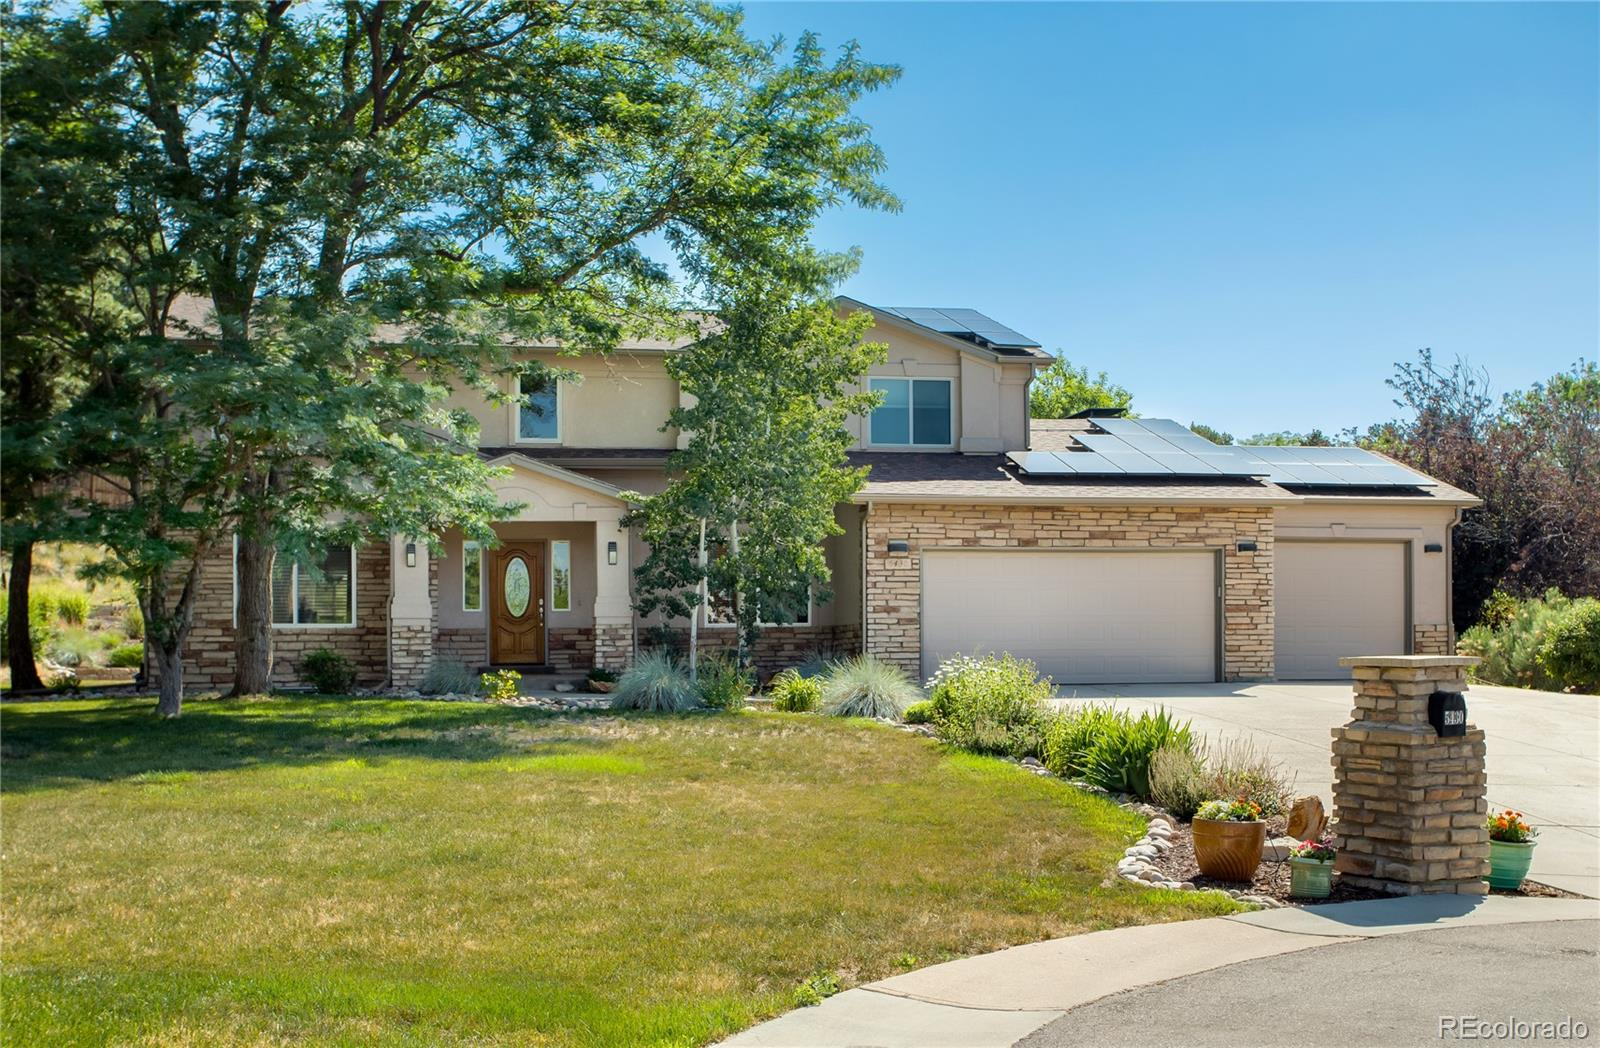 5430 S Dallas Street Property Photo - Greenwood Village, CO real estate listing